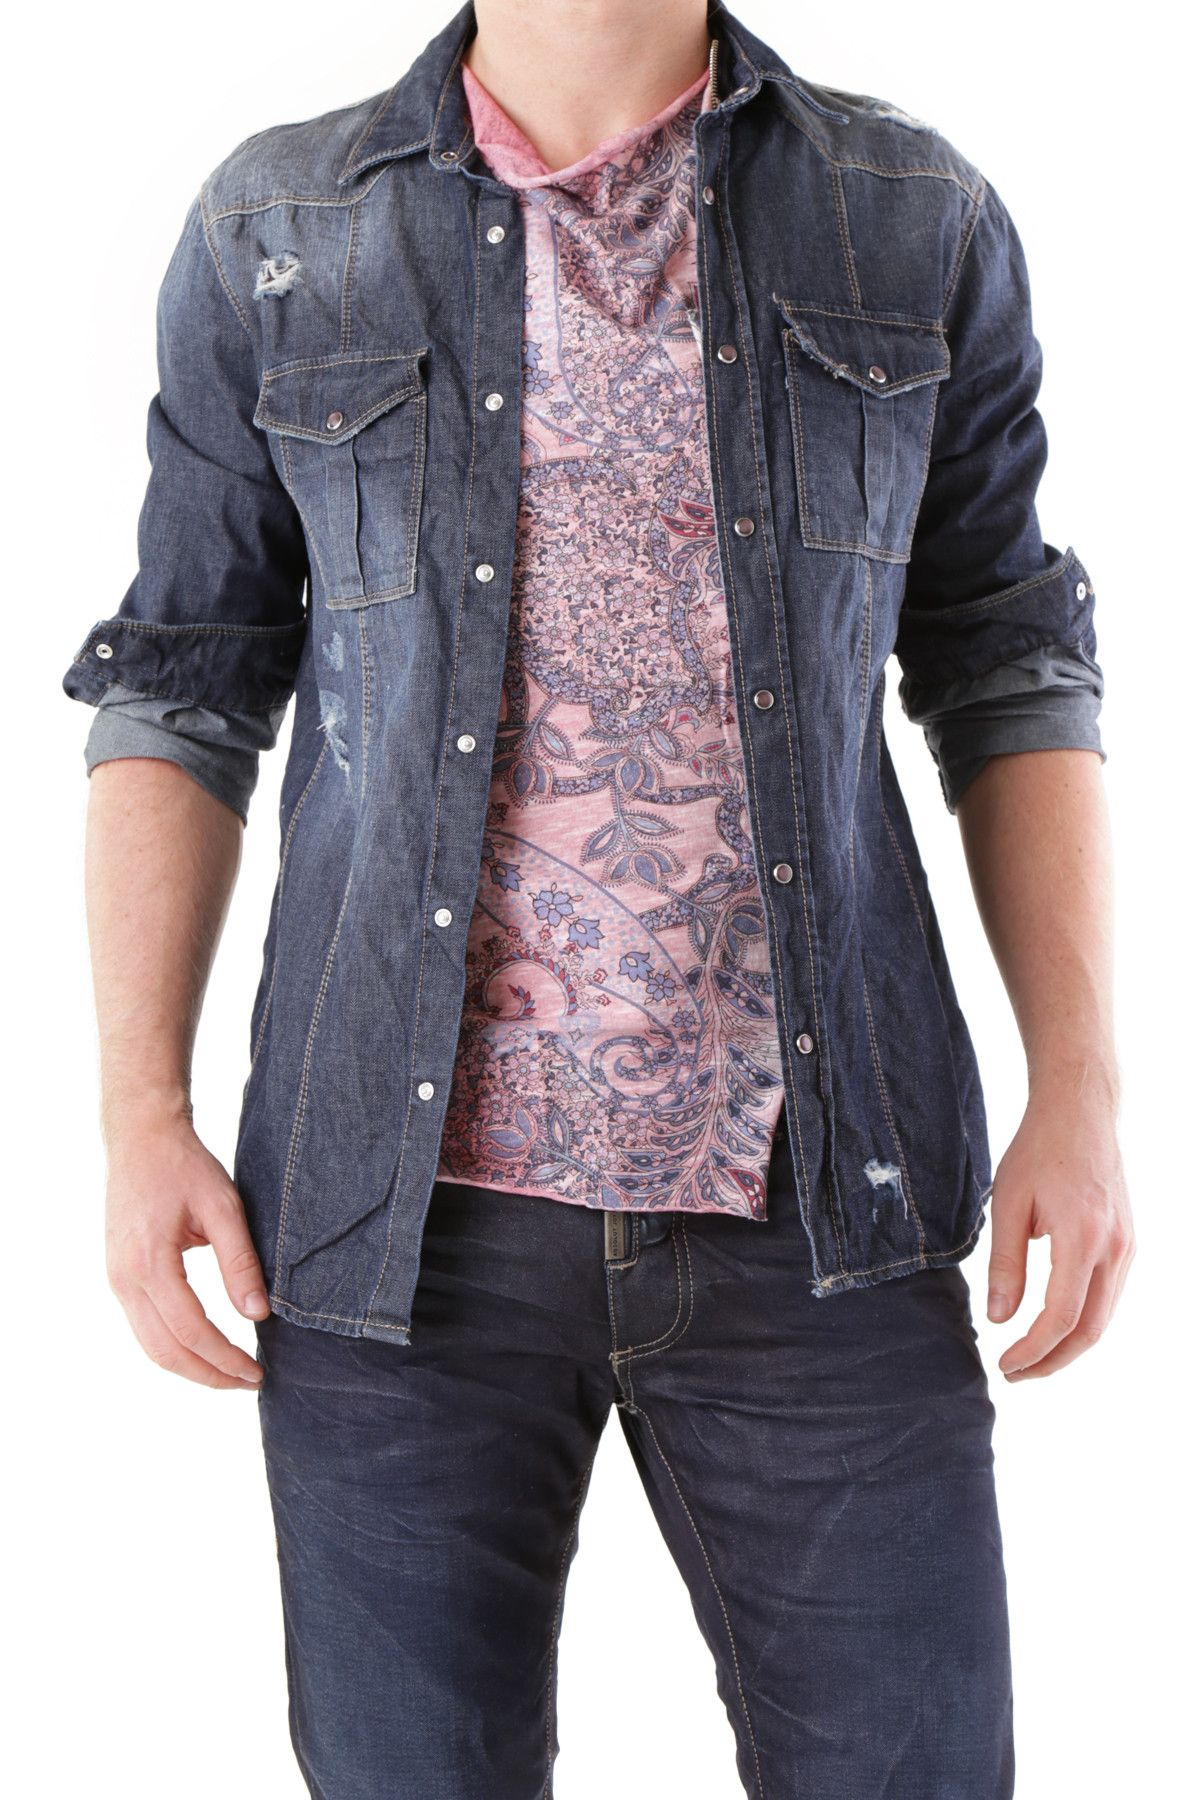 525 Men's Shirt In Blue